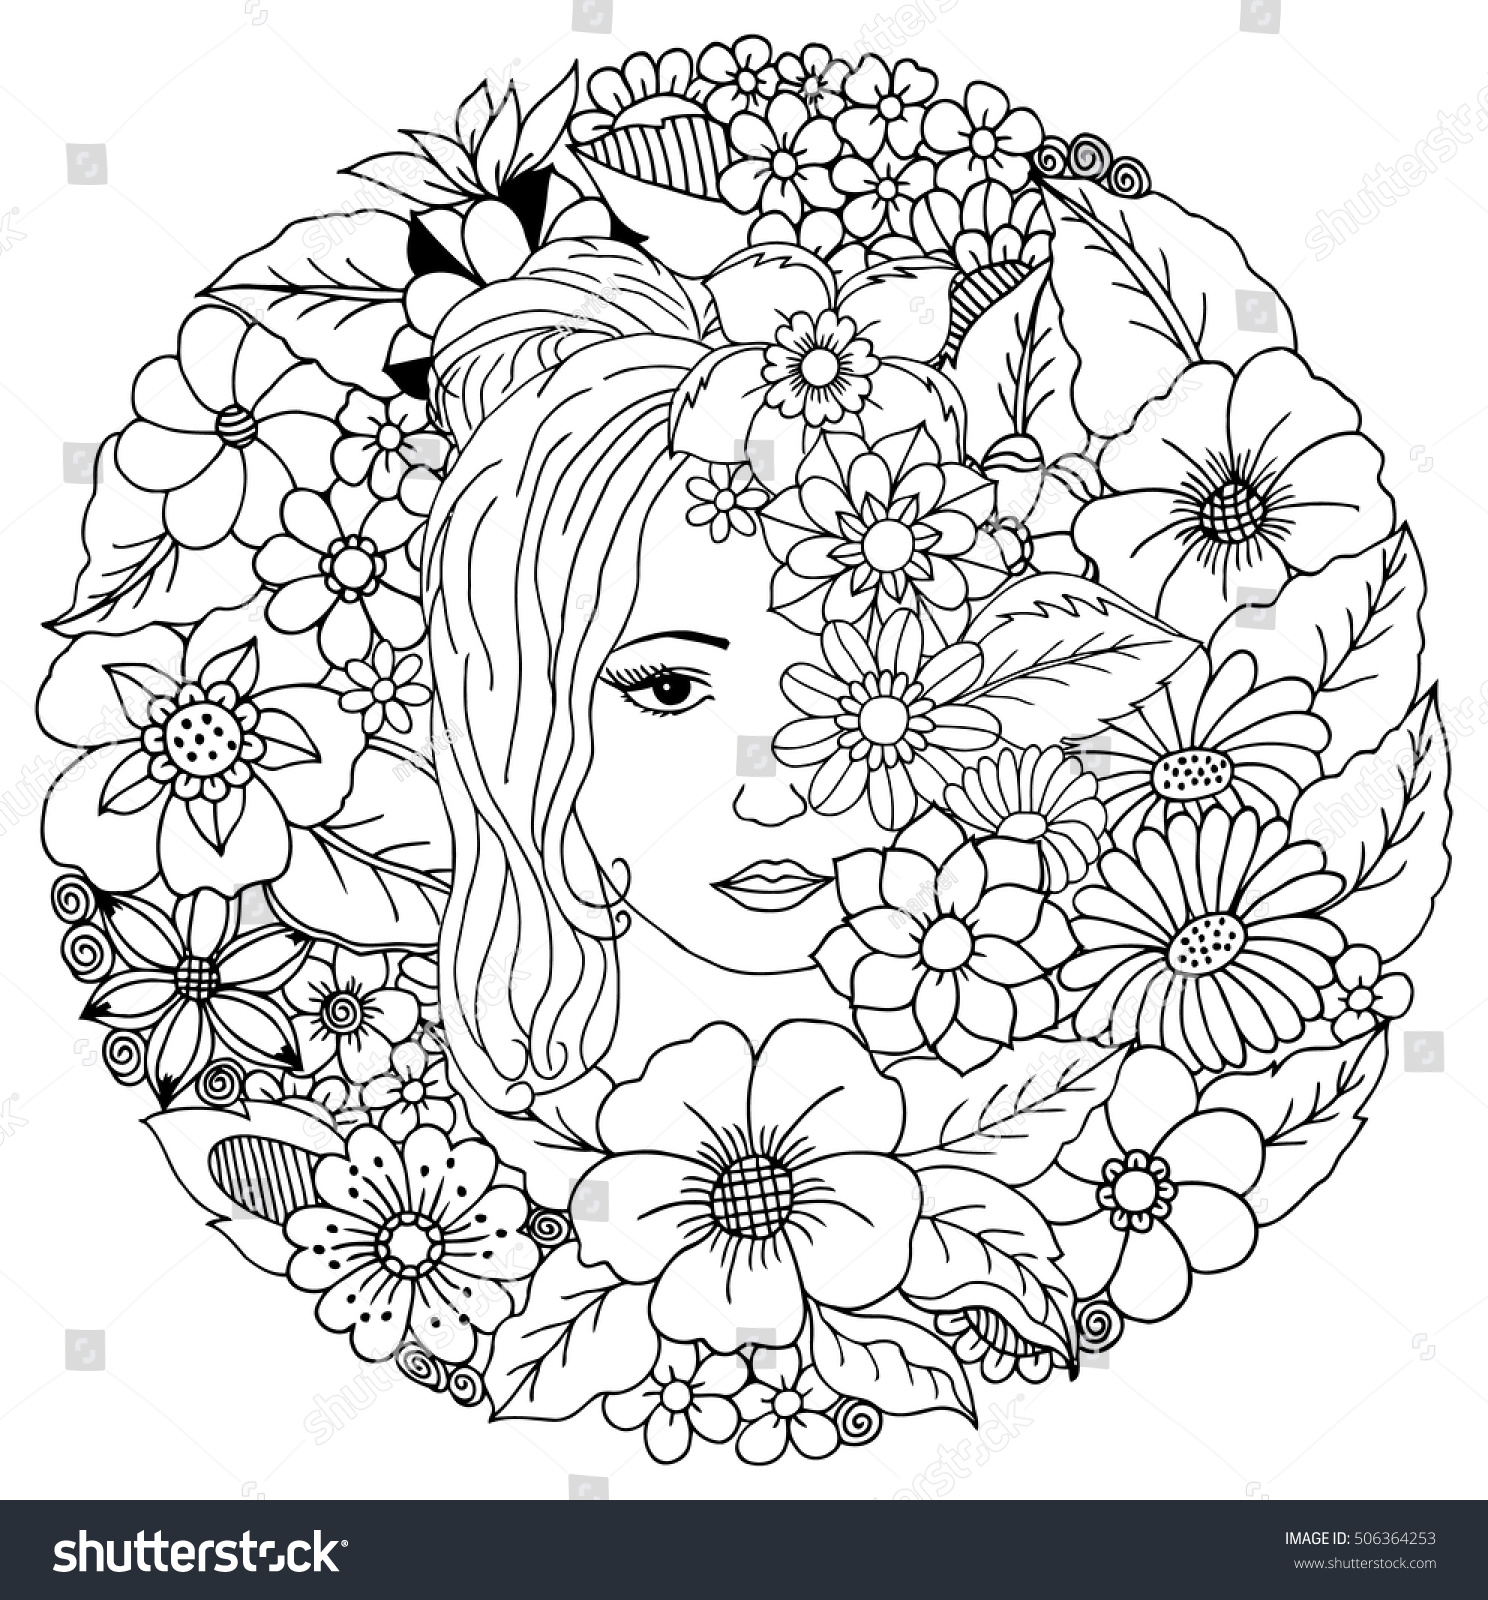 Vector Illustration Zentangl Girl Among Flowers Stock